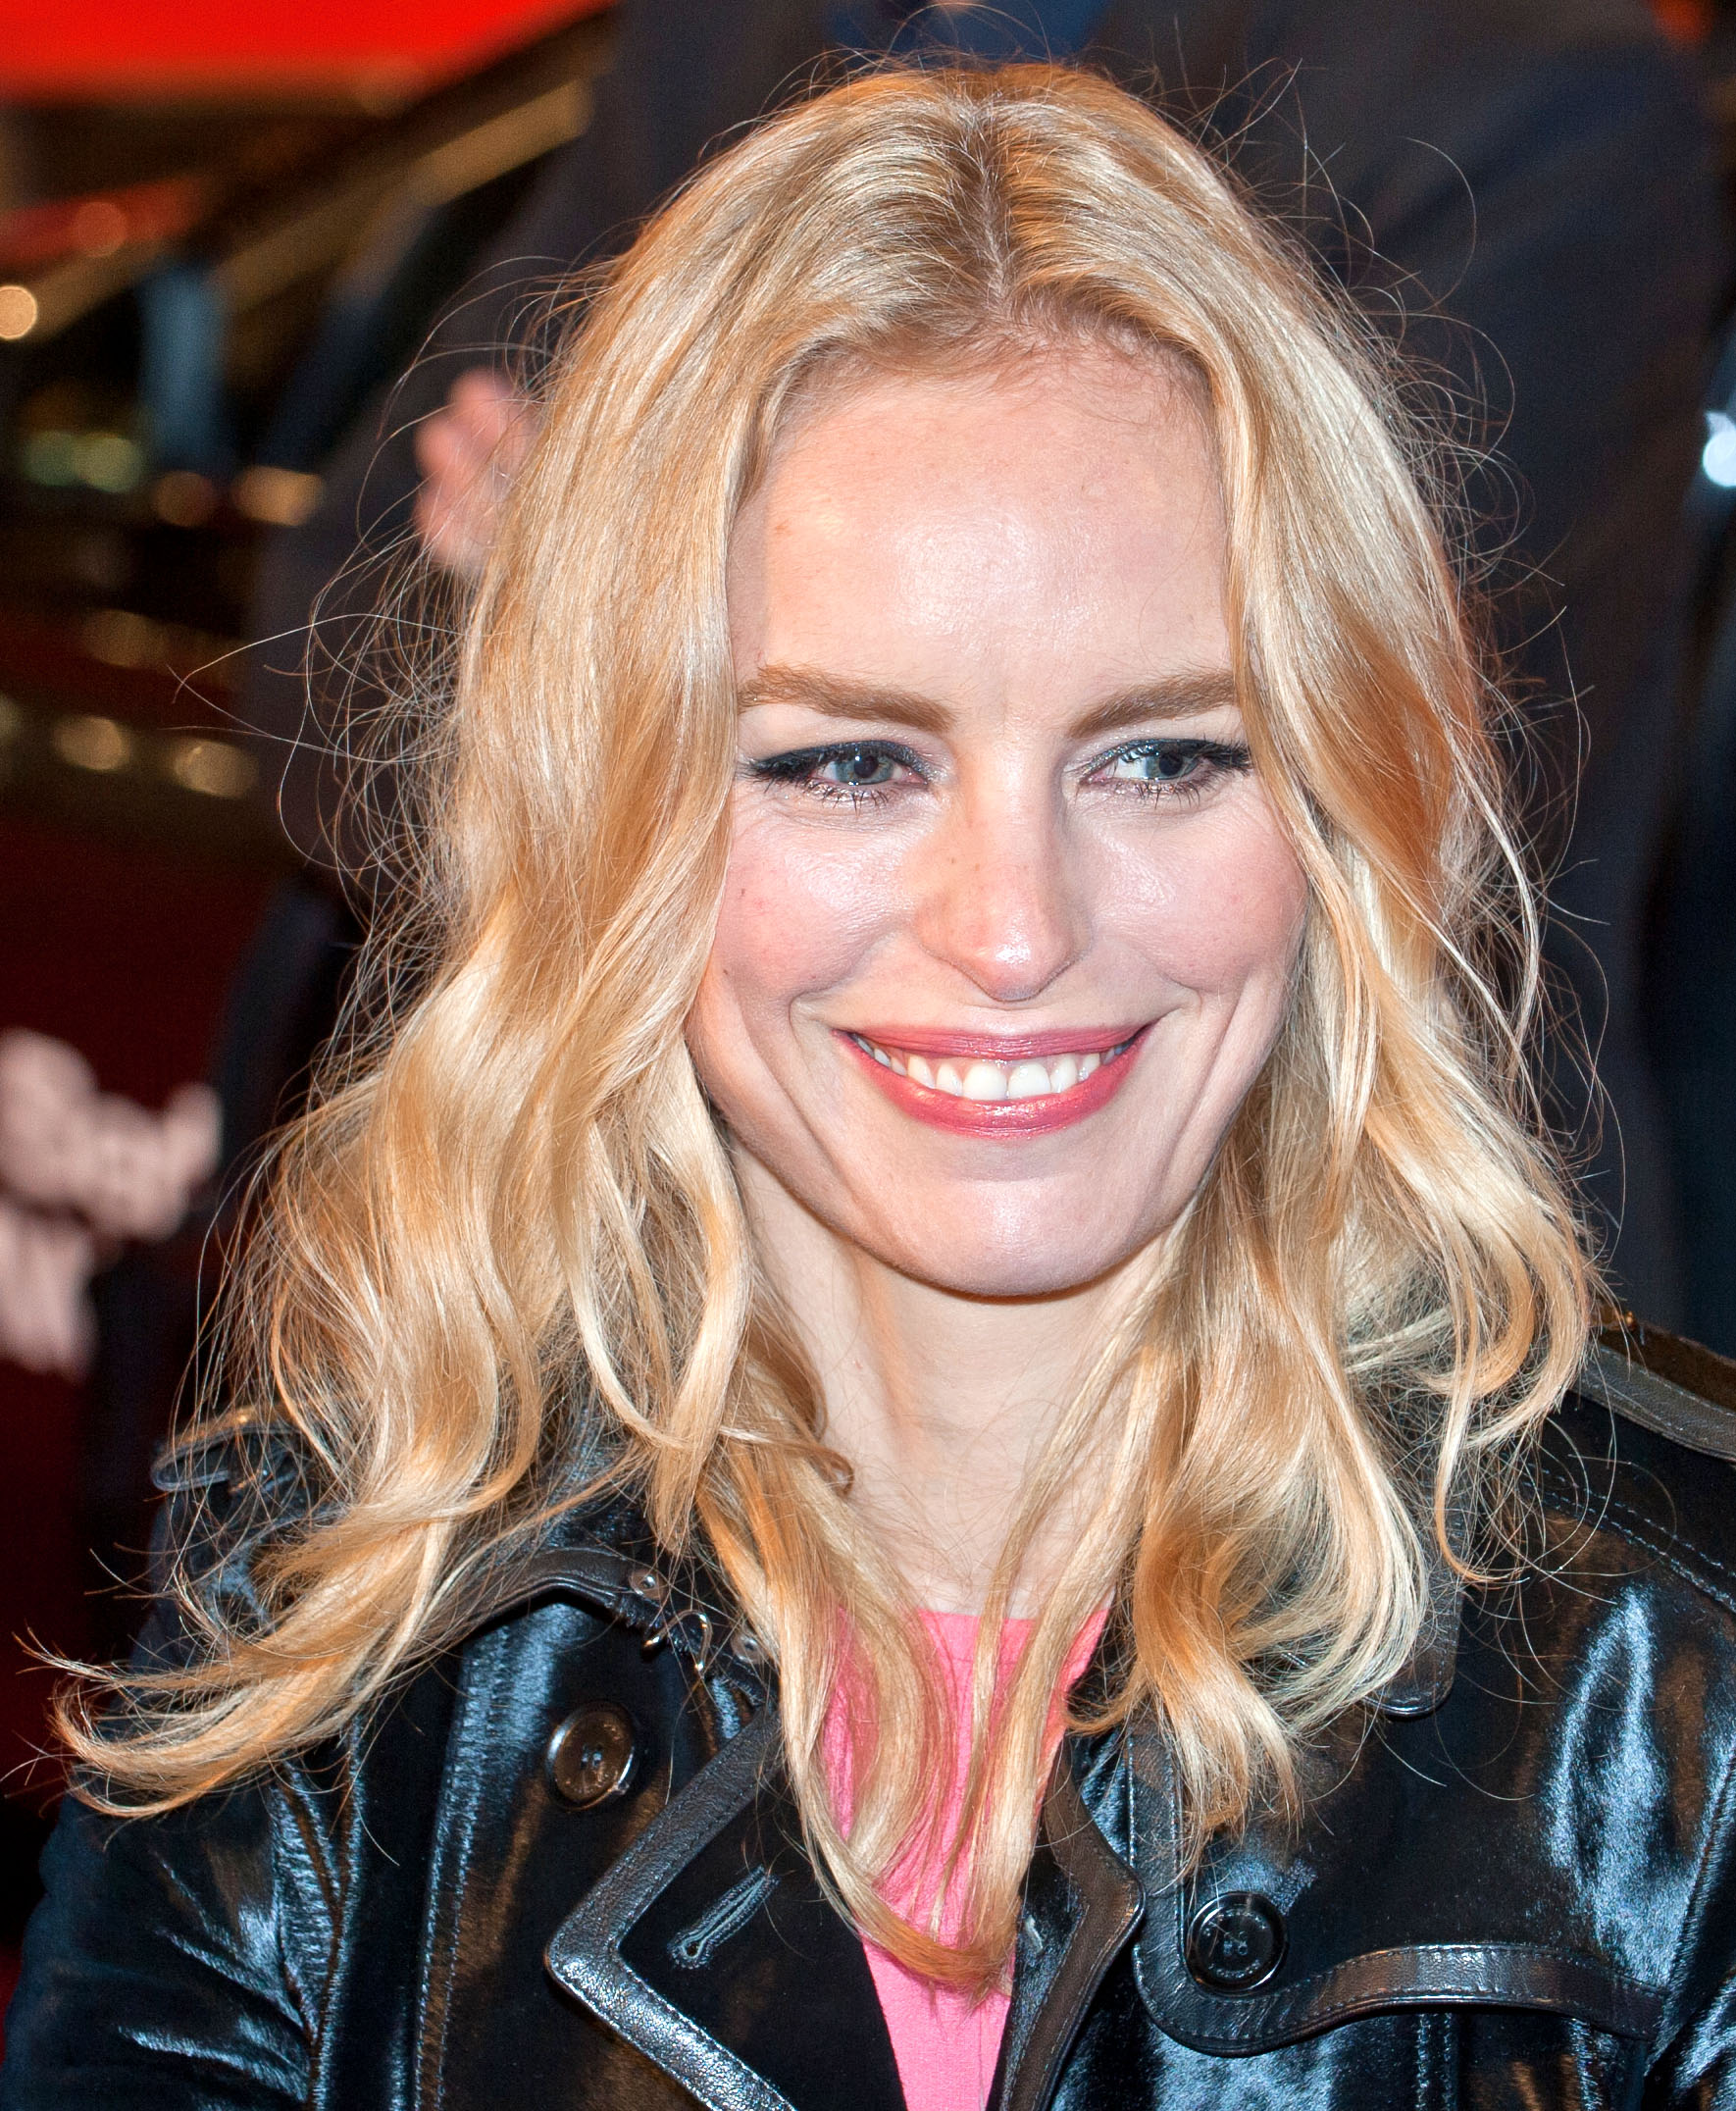 The 43-year old daughter of father Willi and mother Heidemarie Nina Hoss in 2018 photo. Nina Hoss earned a  million dollar salary - leaving the net worth at 2 million in 2018